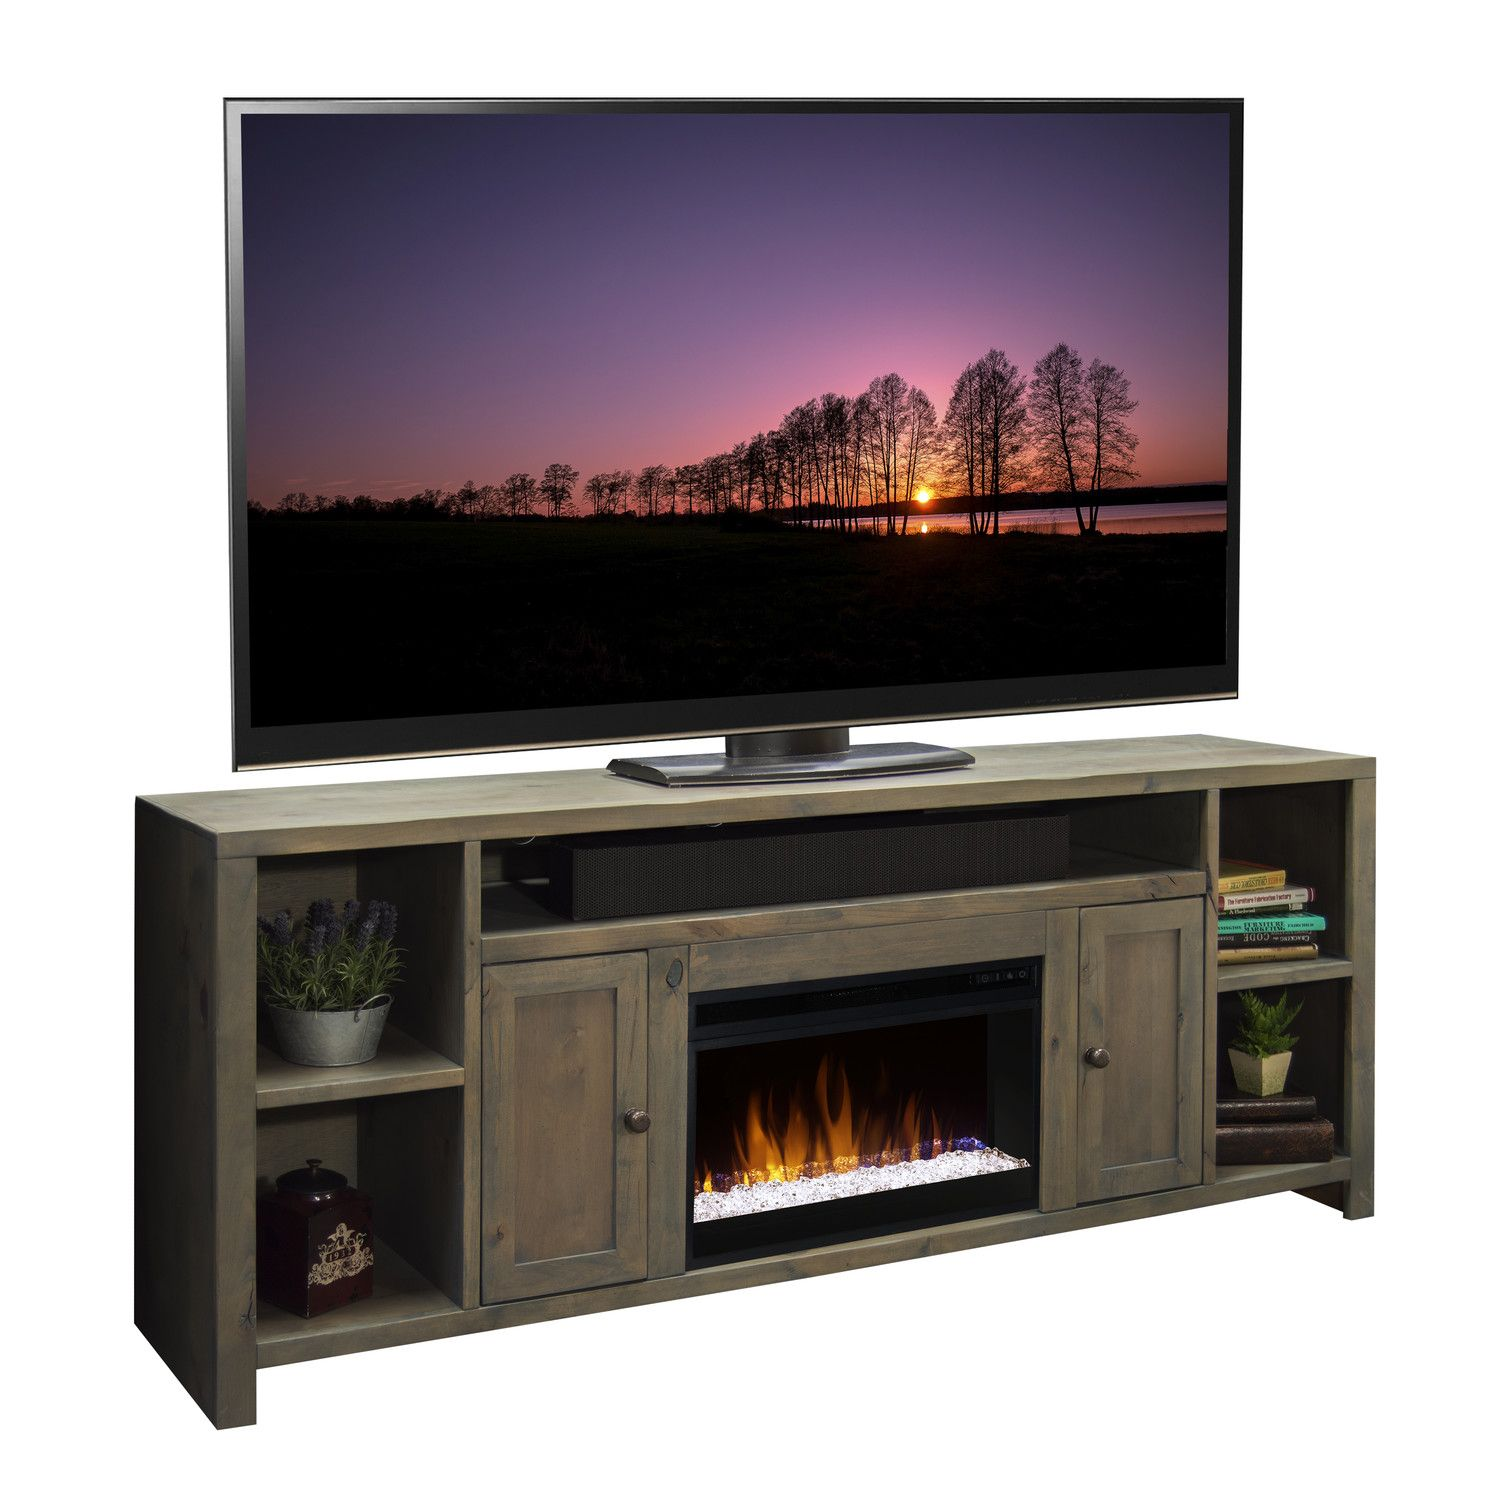 Hokku Designs TV Stand with Electric Fireplace